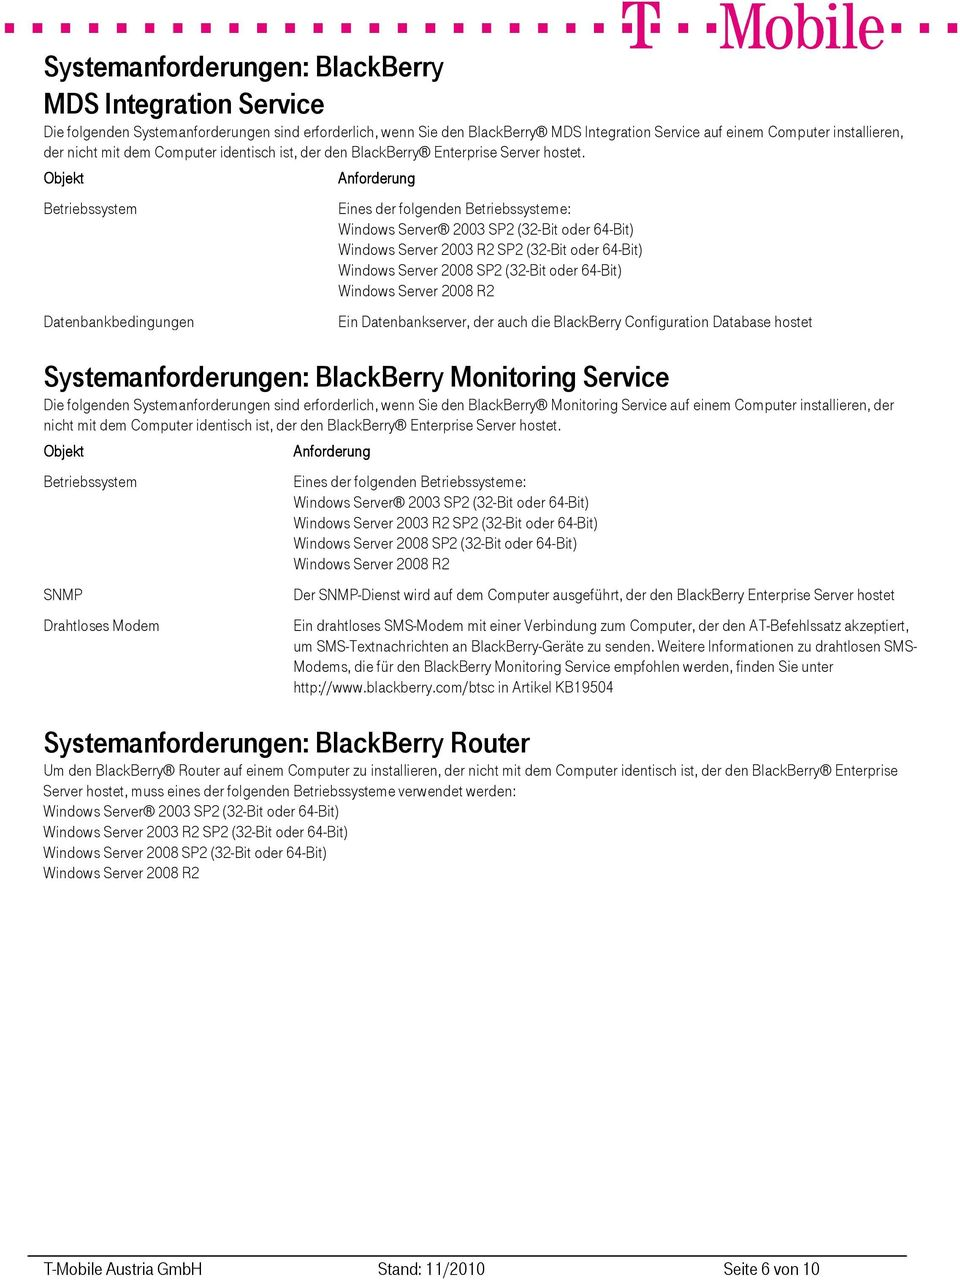 Datenbankbedingungen Eines der folgenden e: Ein Datenbankserver, der auch die BlackBerry Configuration Database hostet Systemanforderungen: BlackBerry Monitoring Service Die folgenden